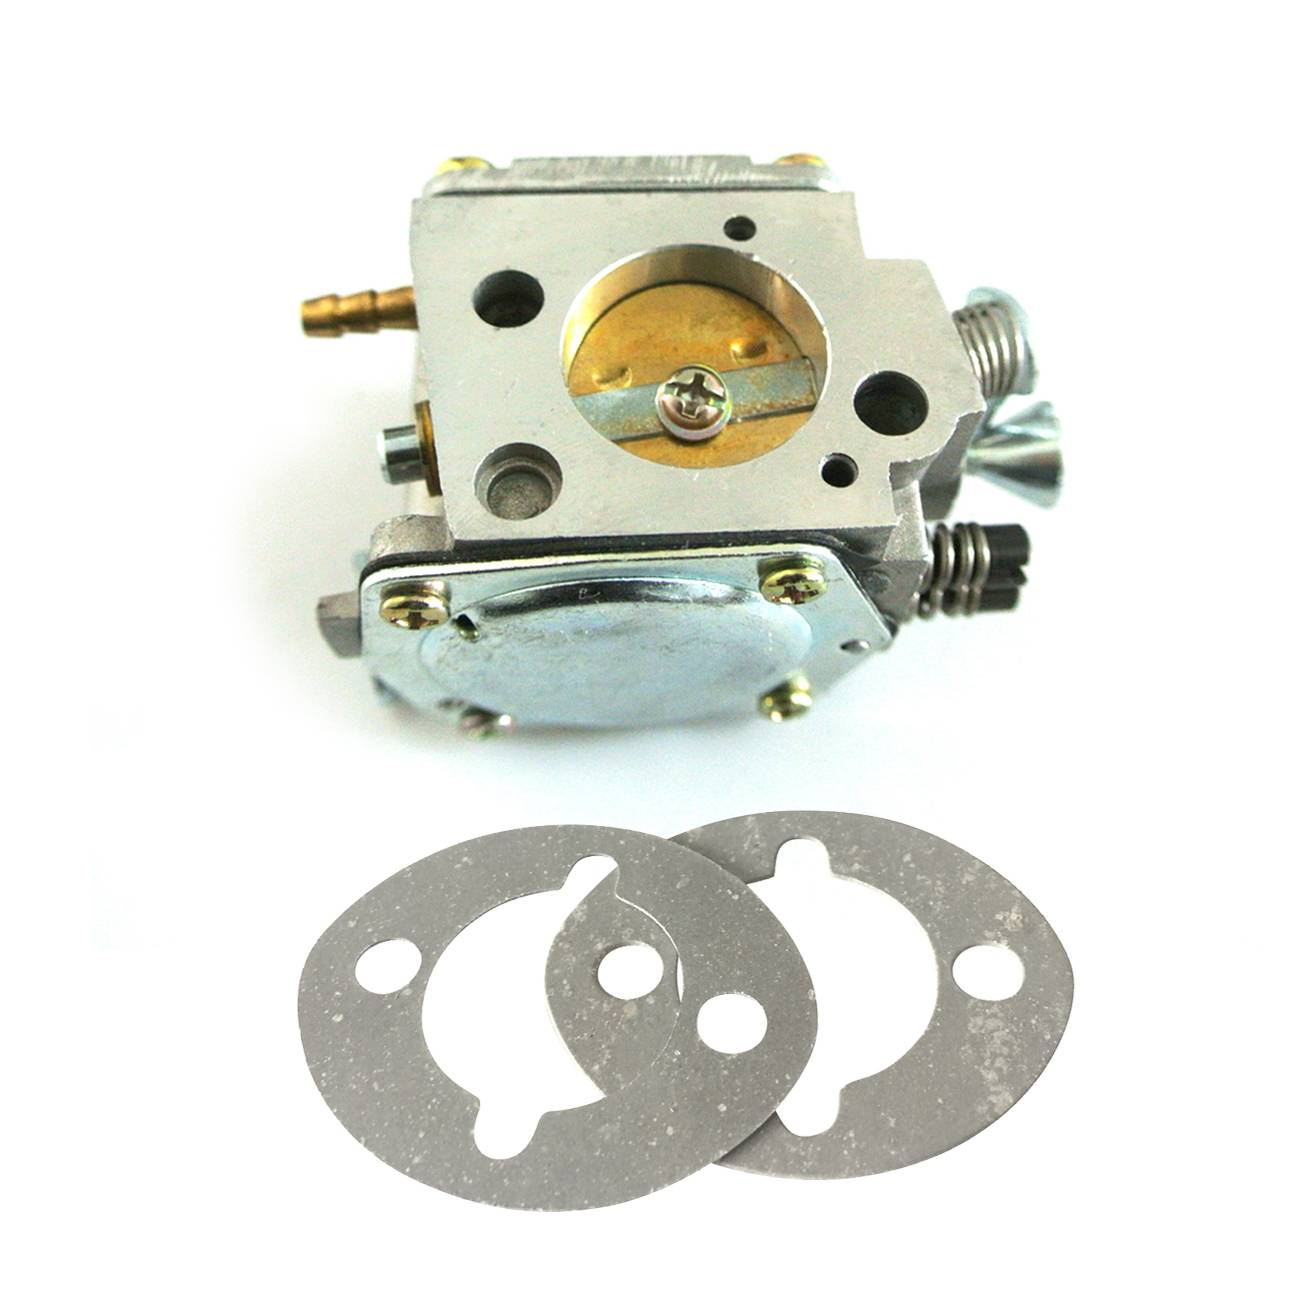 Carburetor & Gaskets Fit HUSQVARNA 61 268 266 272 XP Chainsaw Motor  Parts-in Chainsaws from Tools on Aliexpress.com | Alibaba Group